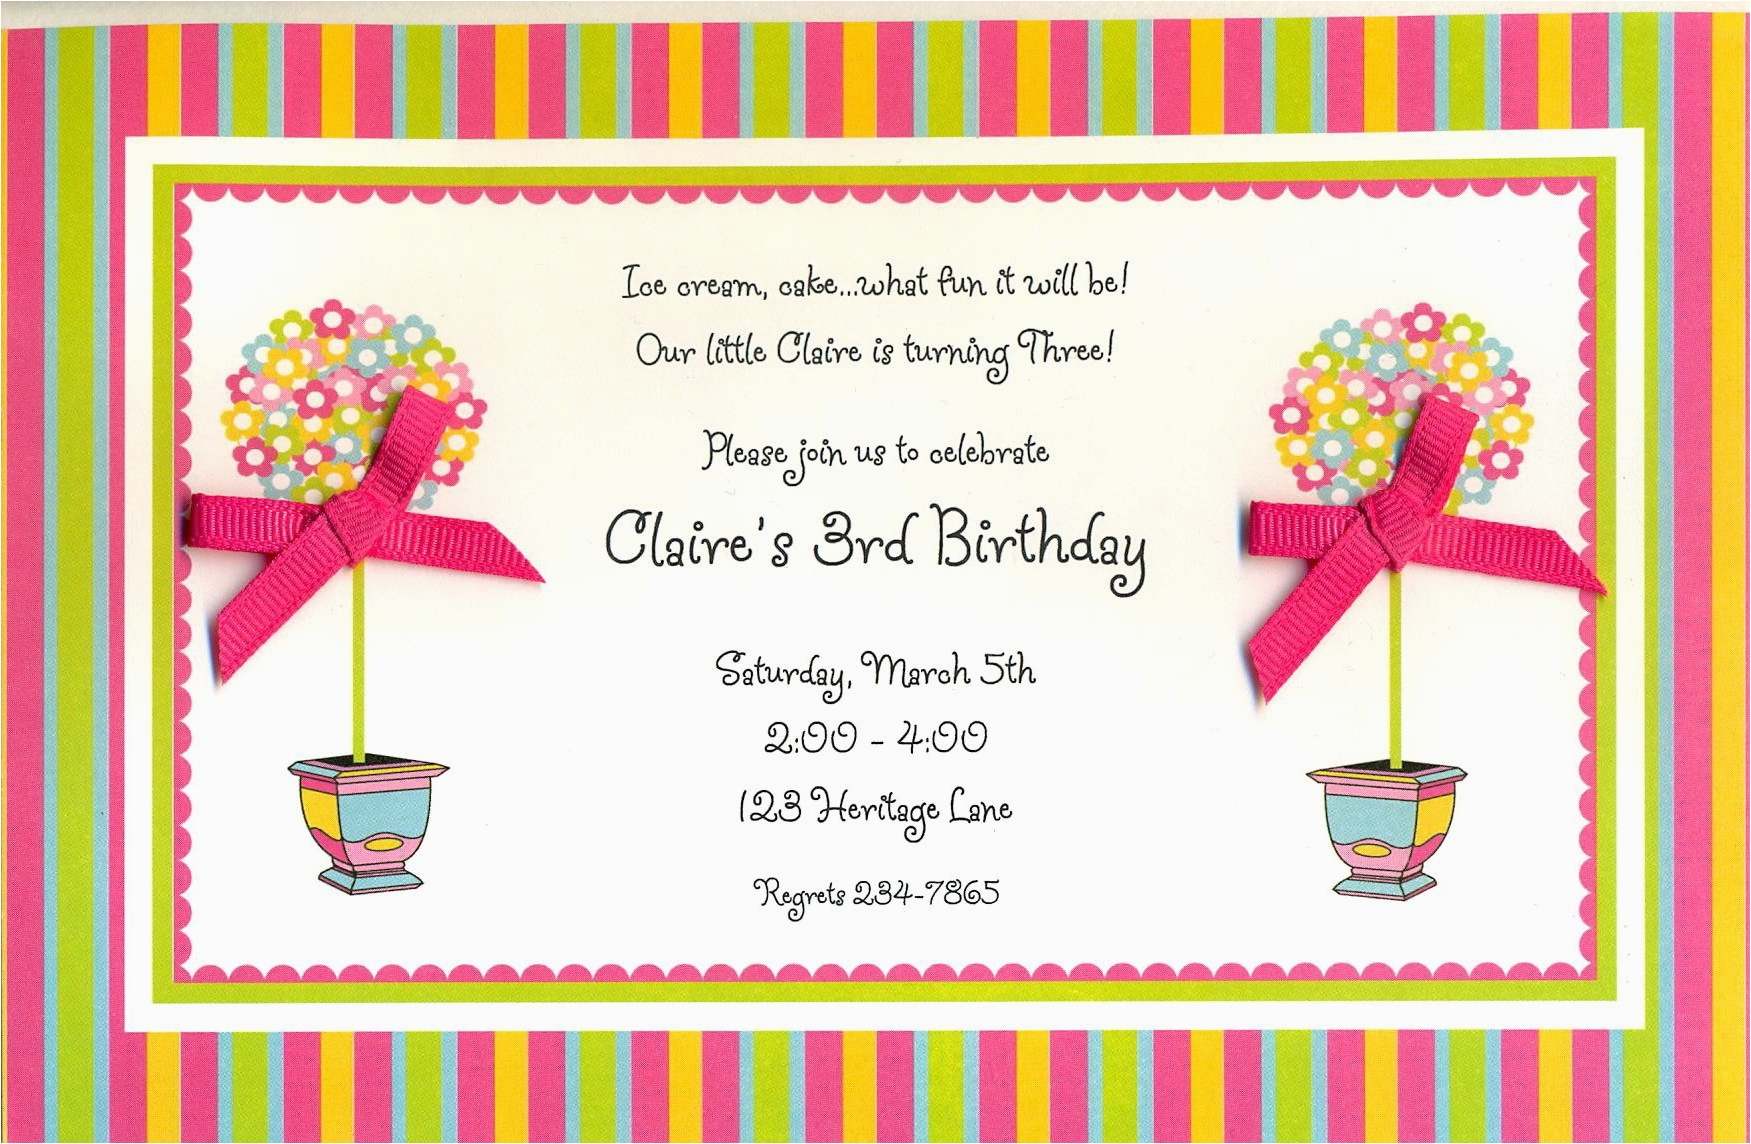 Invite To Birthday Party Wording Birthdaybuzz